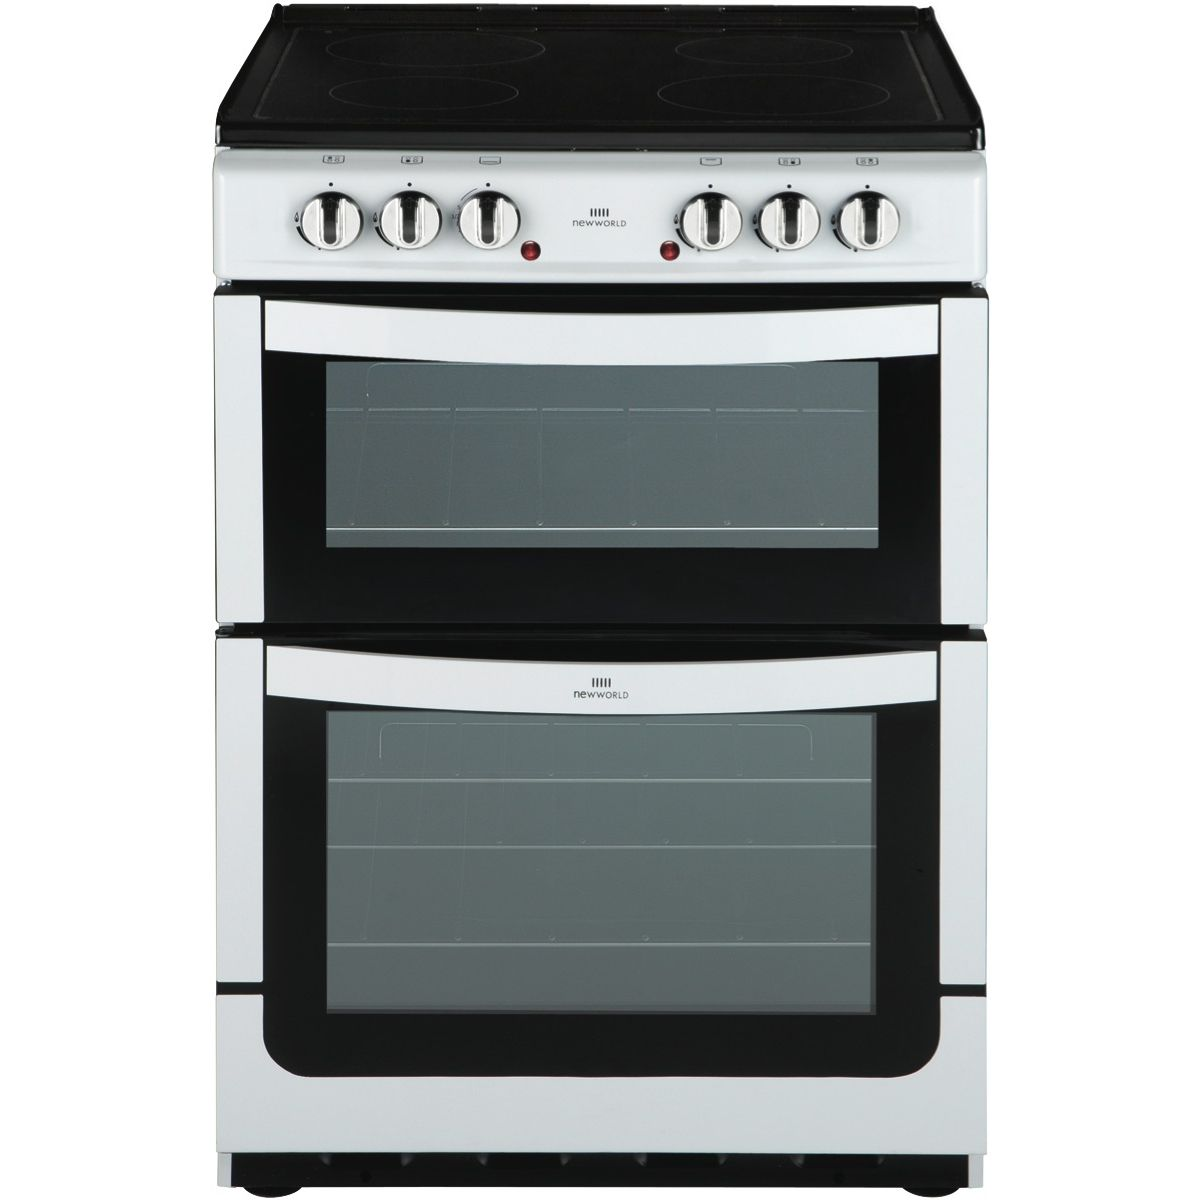 New World Kitchen Appliances Shop Online For New World Nw601etcwhi New World 60cm Electric